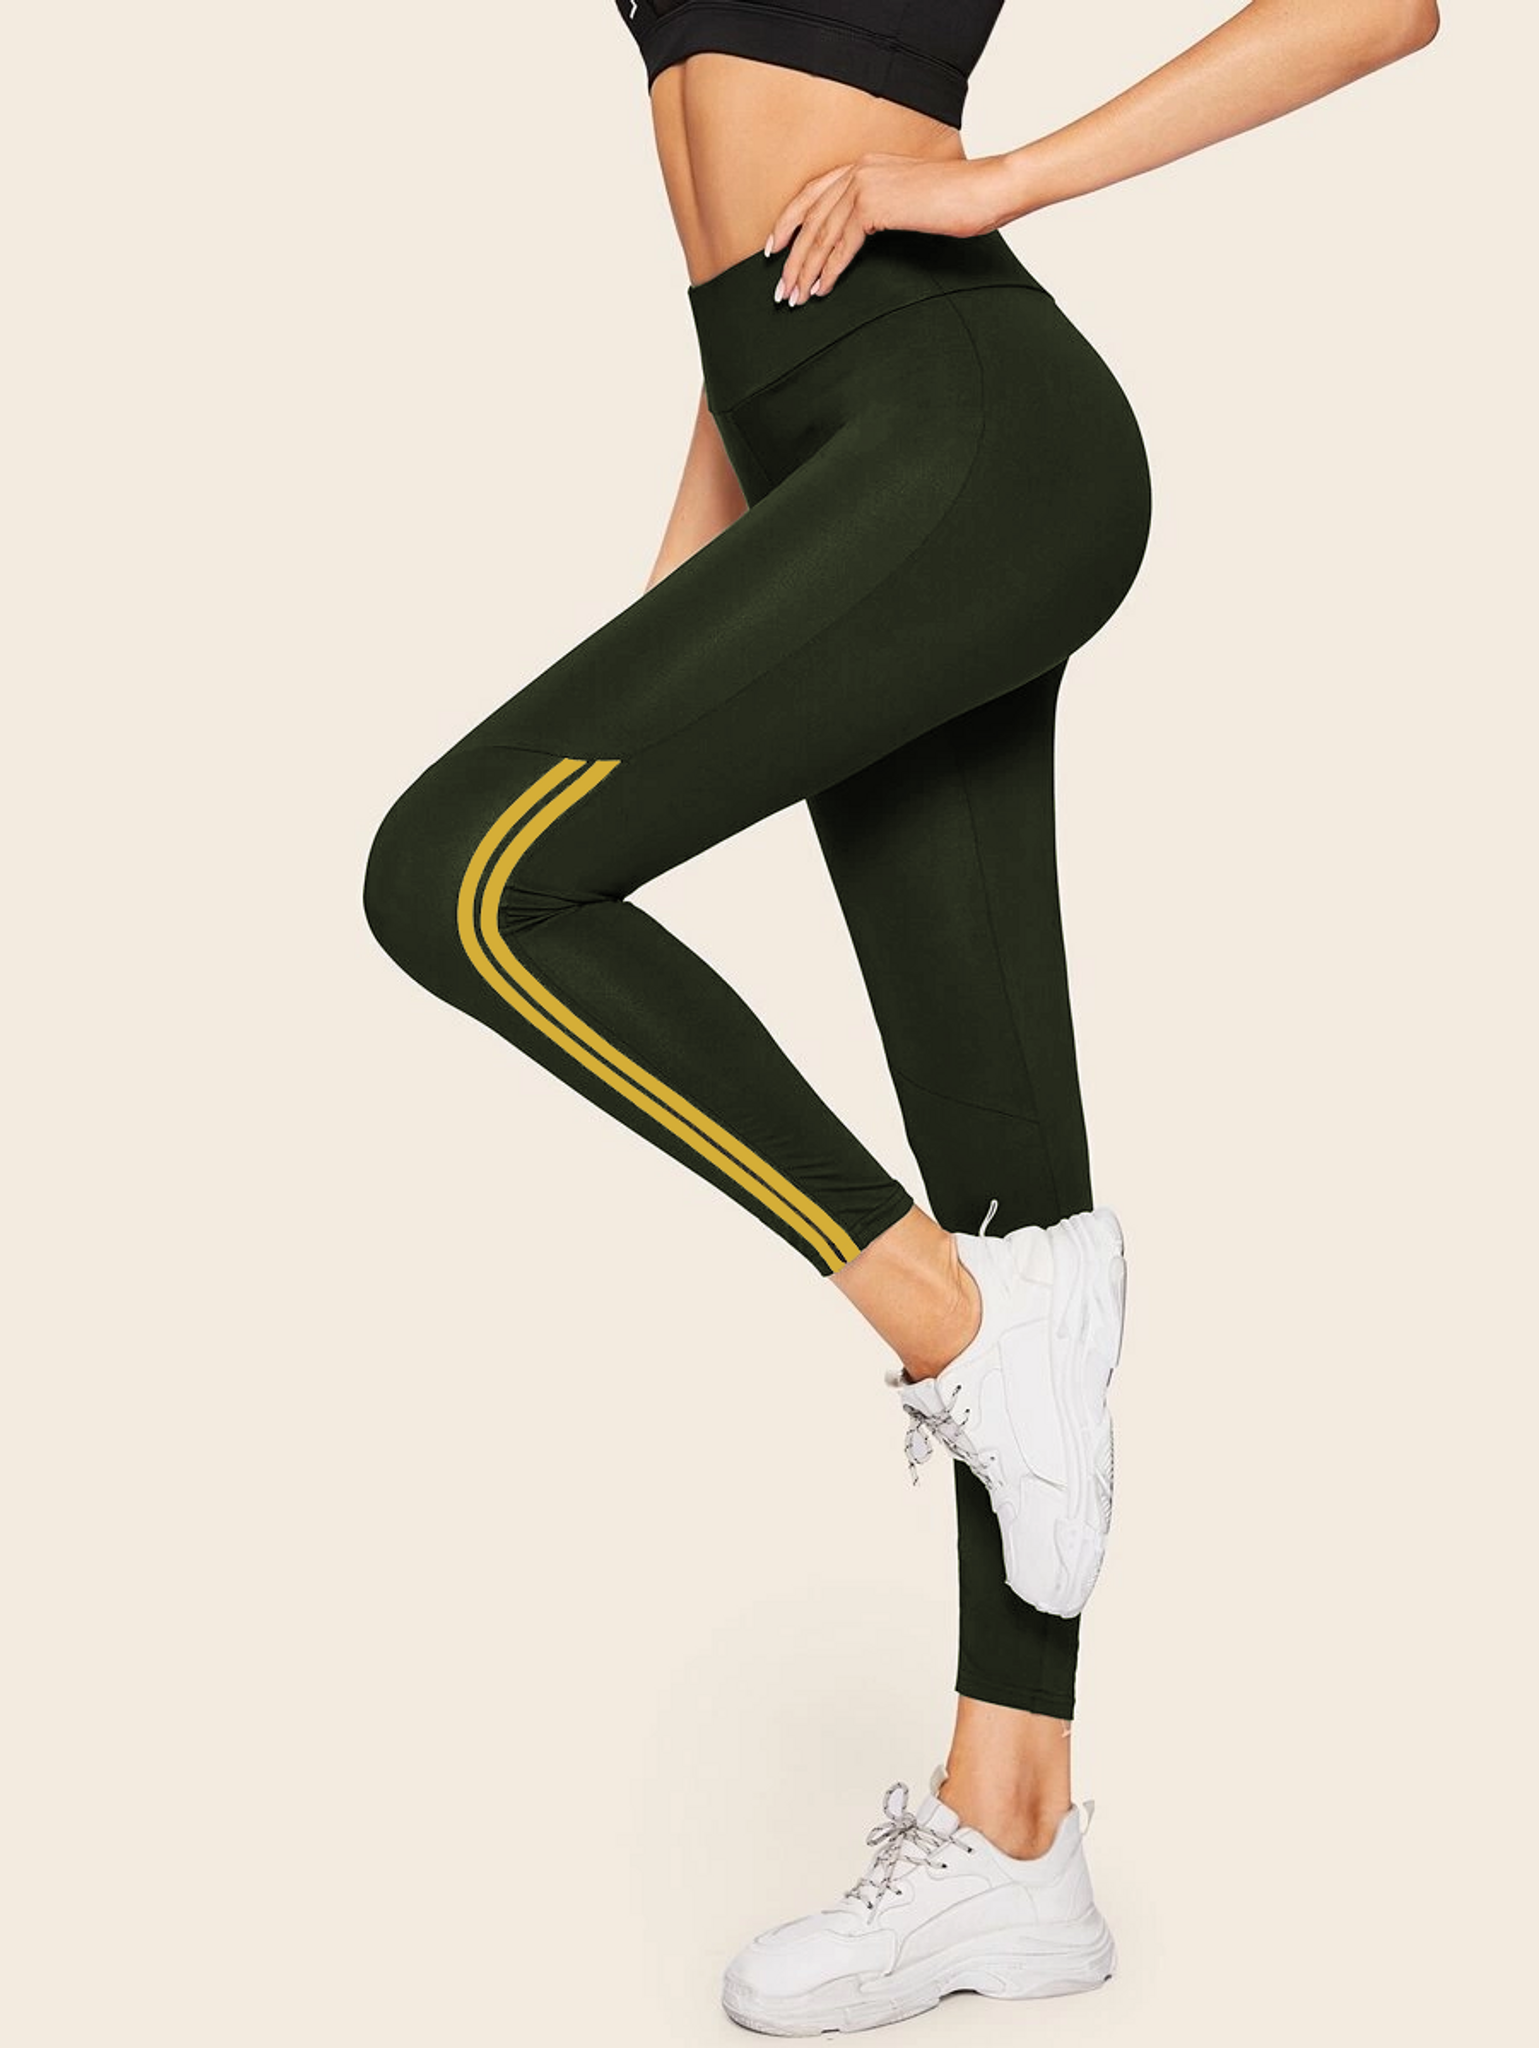 Fifth Avenue FTYP3 Contrast Ankle Striped Yoga Pants